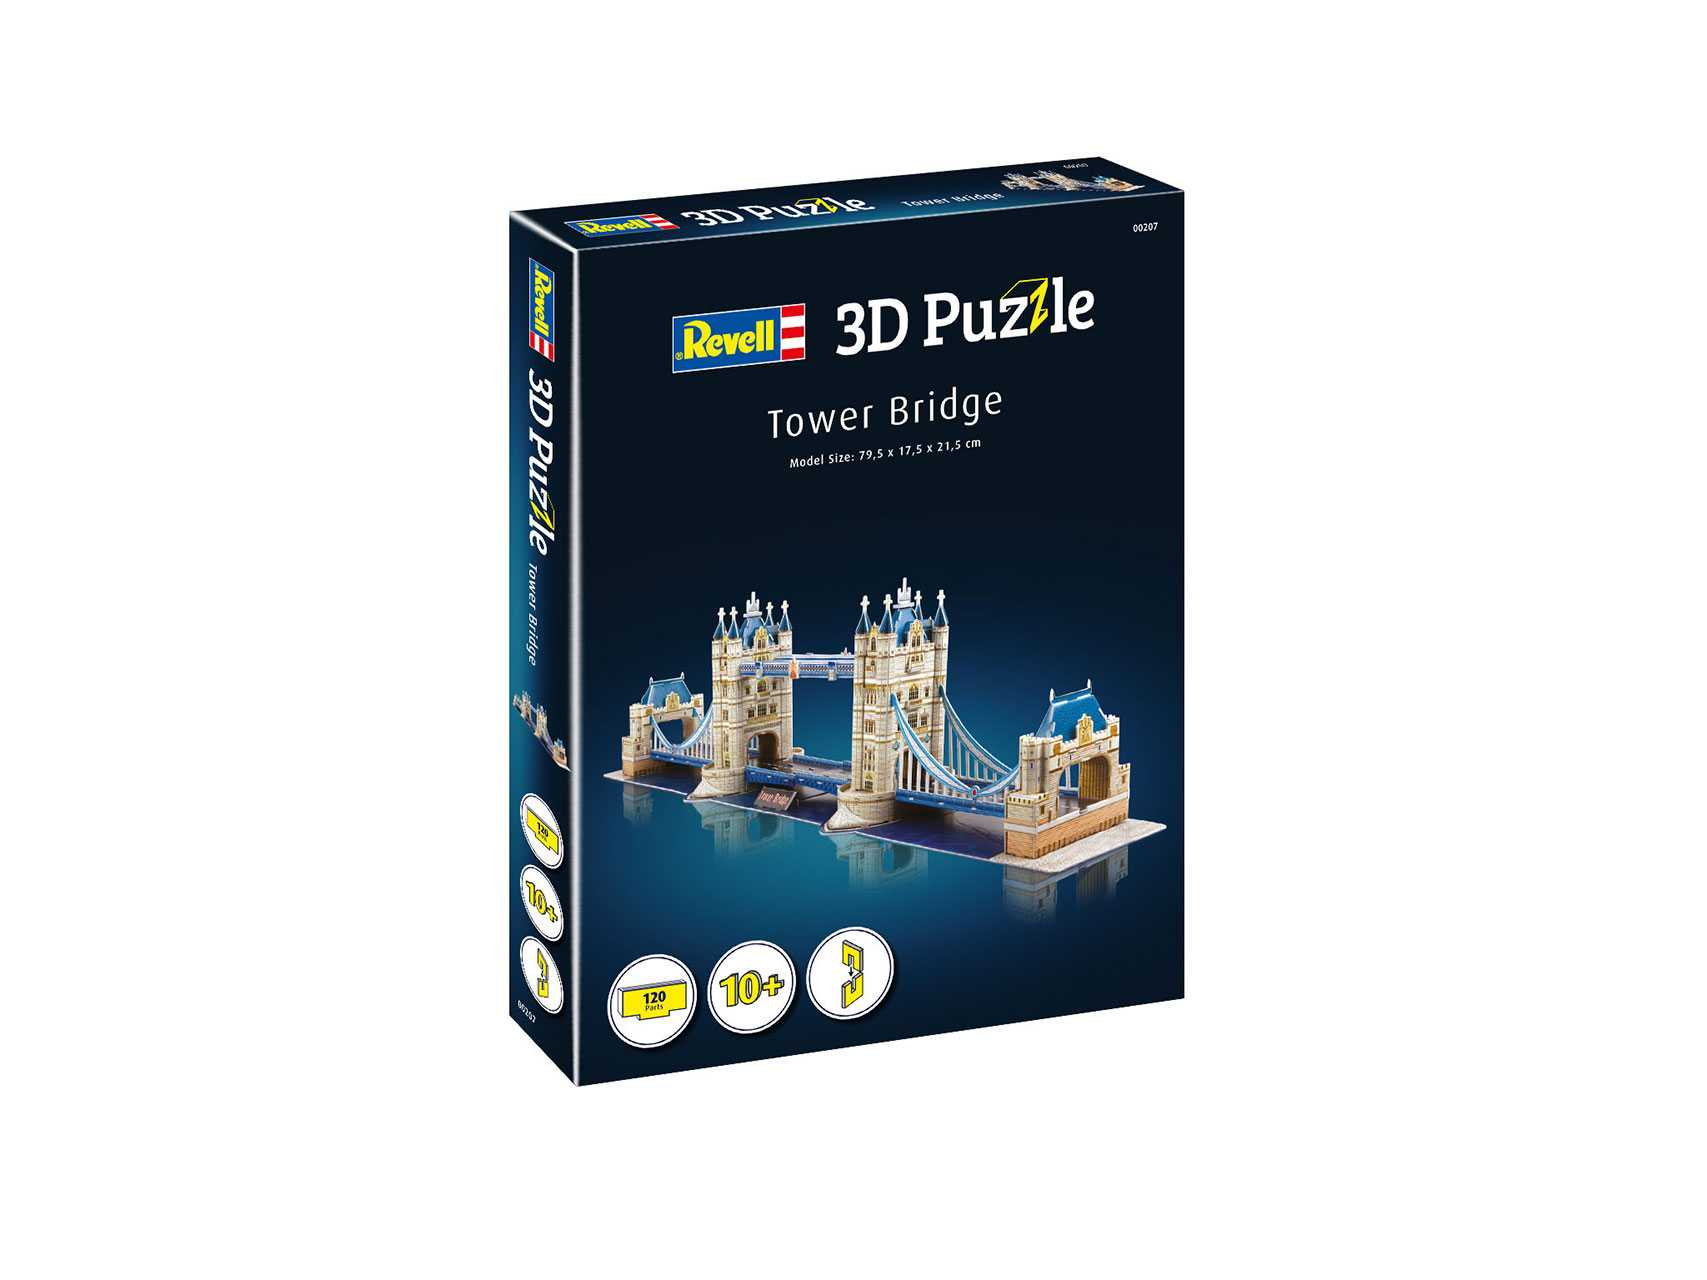 3D Puzzle Revell – Tower Bridge